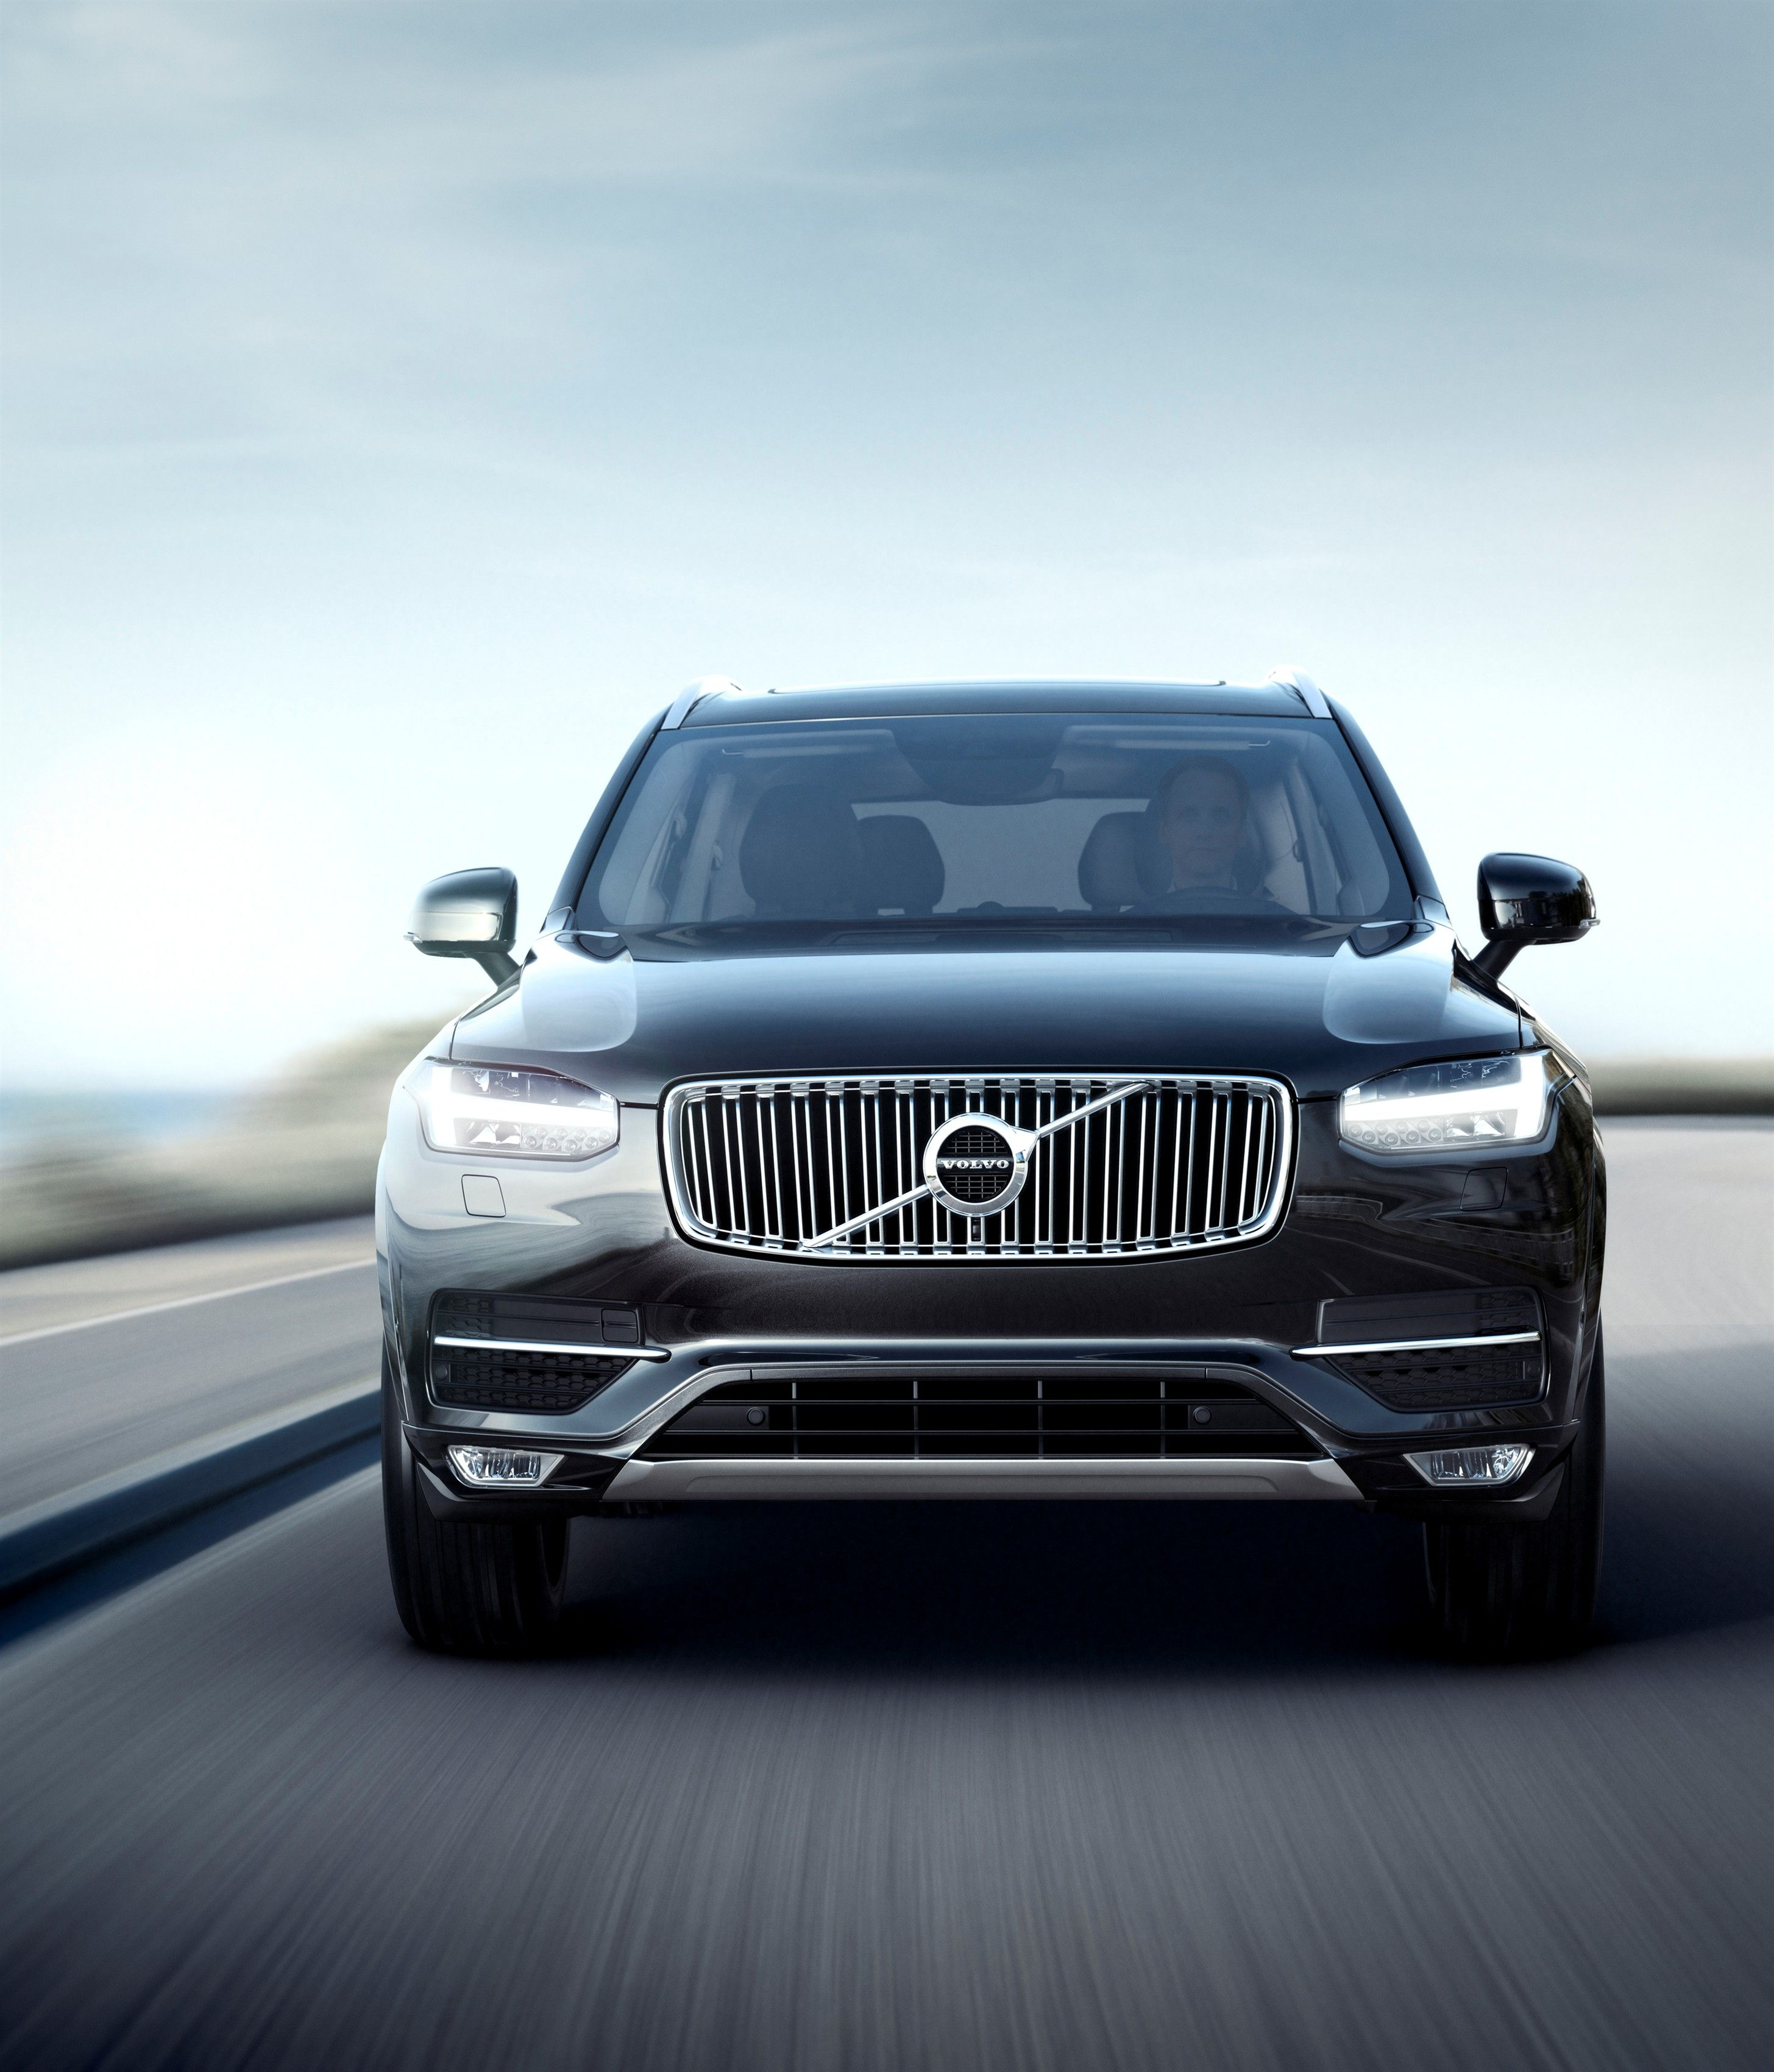 Aggressive Front End Styling Of The All New Volvo Xc90 Featuring New Thor S Hammer Led Lights A Revised Iron Mark Logo And A Re Volvo Xc90 Volvo Volvo Cars